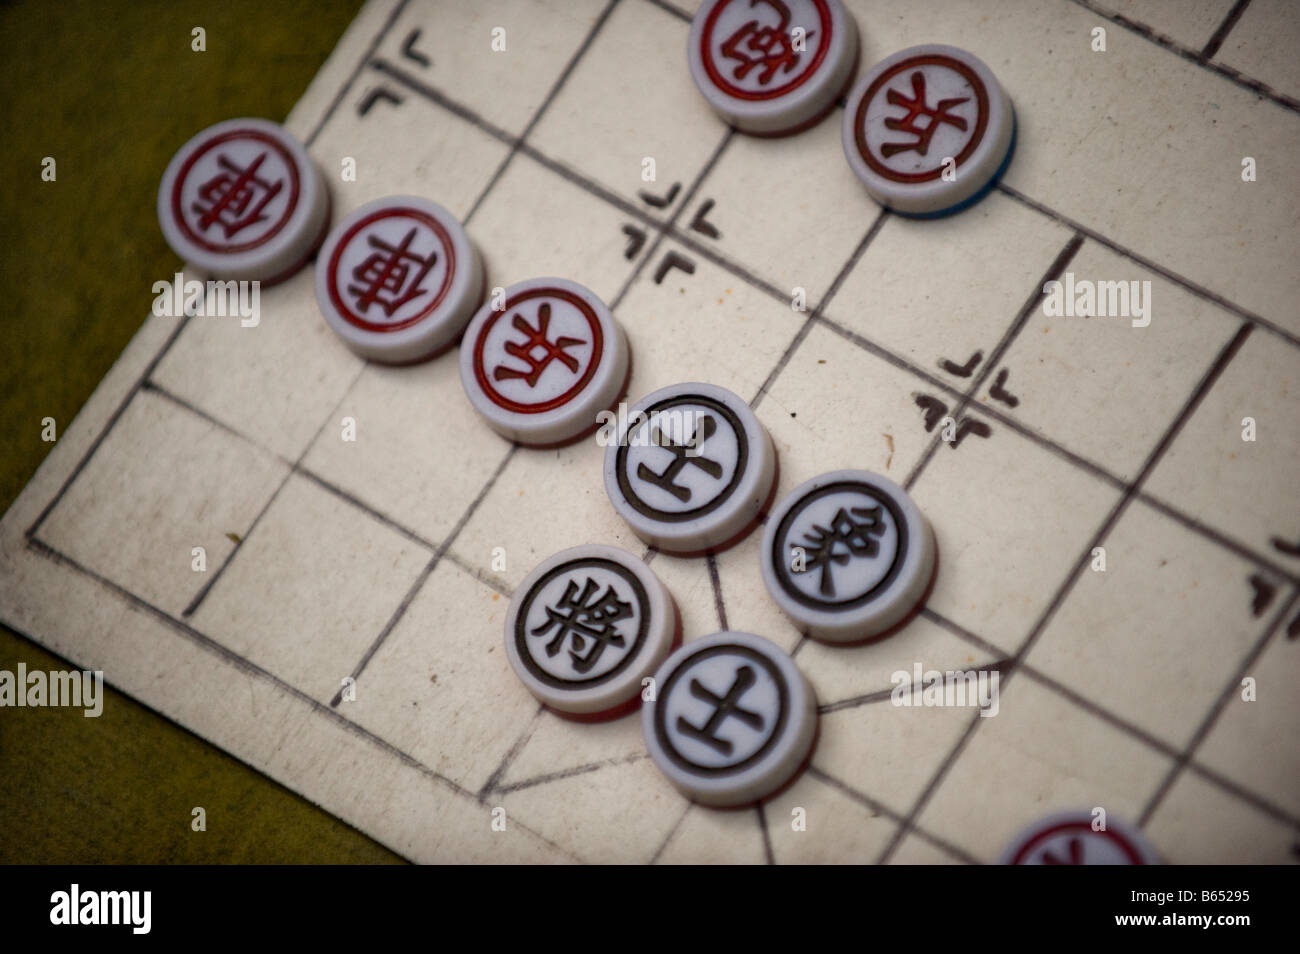 Pieces of the Chinese game Xiang qi, or Chinese chess, is pictured at a street in Hong Kong, China - Stock Image